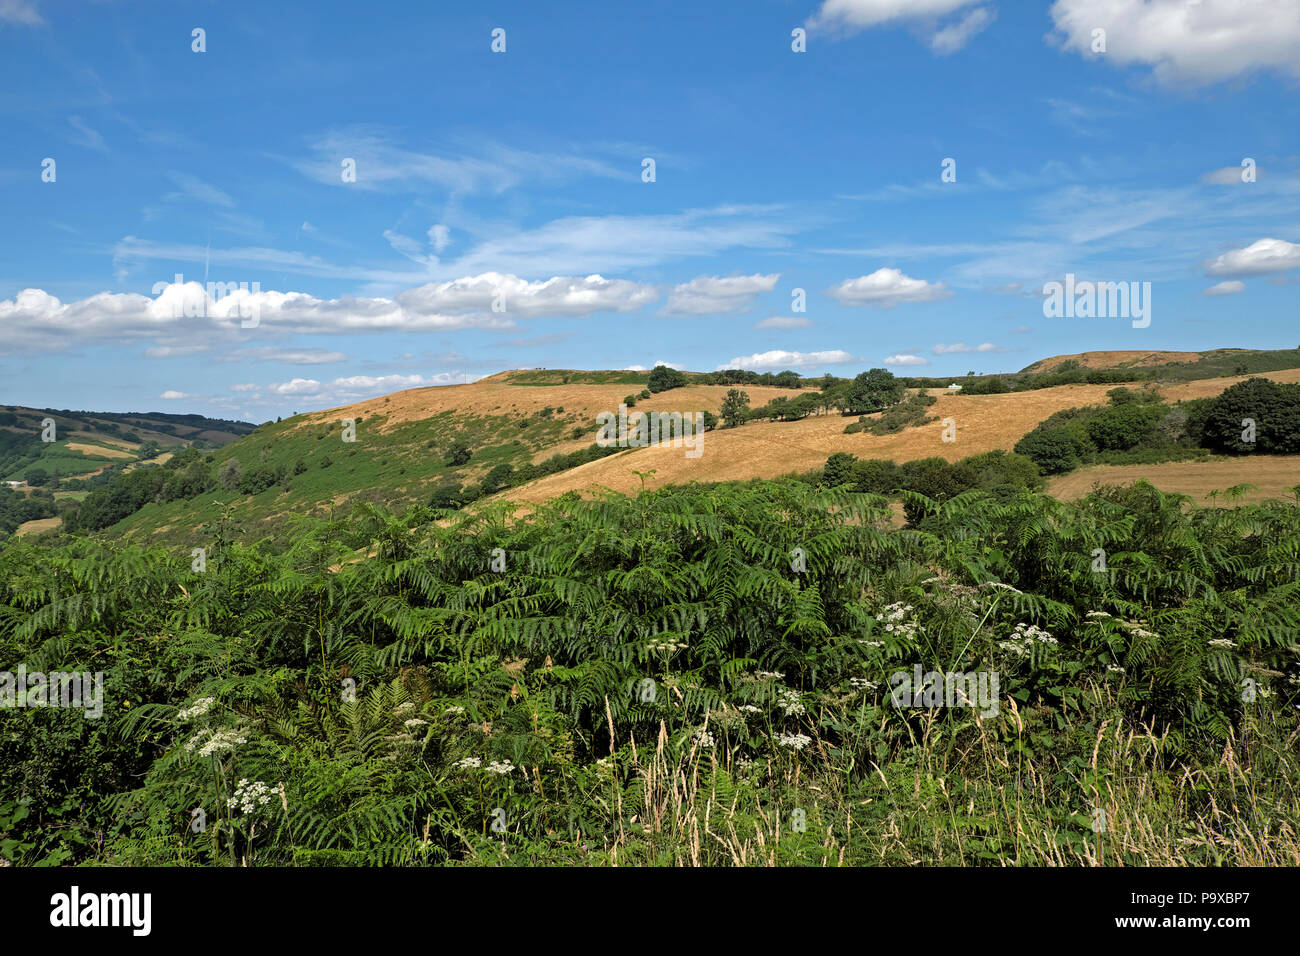 Parched brown hills and fields in July 2018 heatwave on farming land in Carmarthenshire, Wales UK  KATHY DEWITT - Stock Image